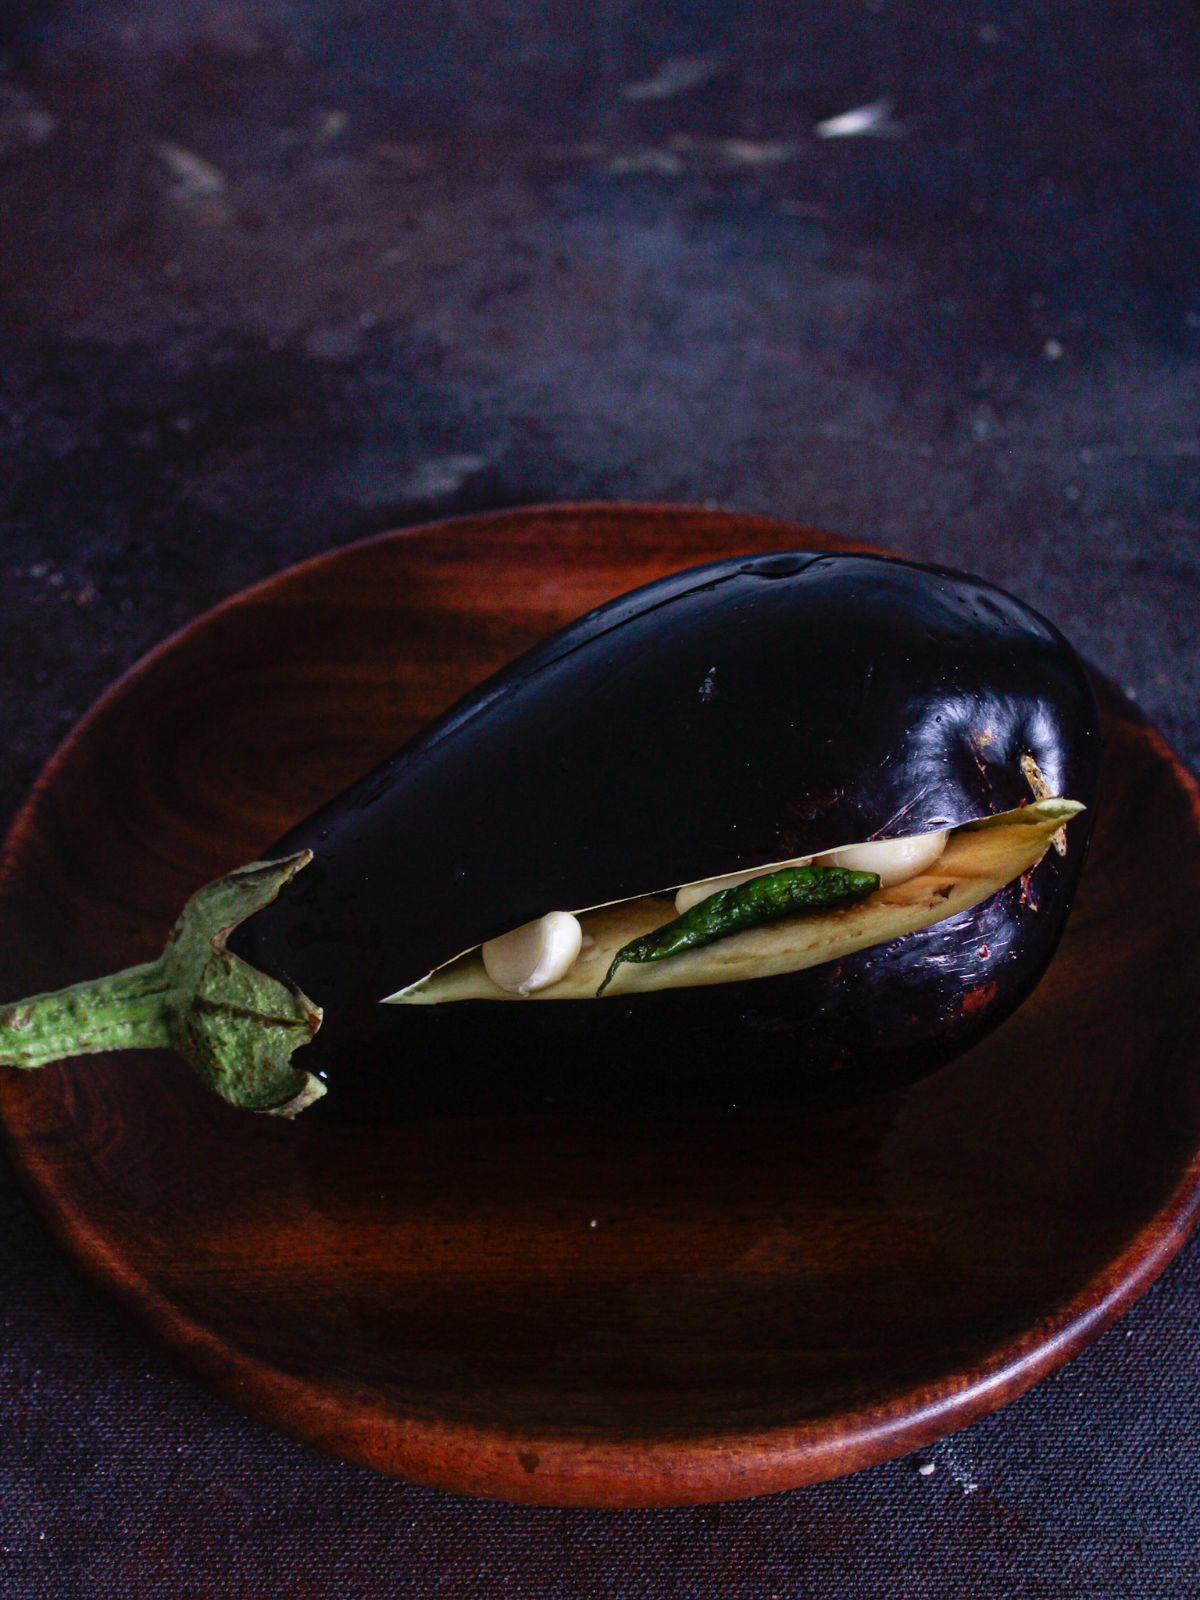 Wooden bowl with eggplant on top that has slit on side with chiles and garlic inside